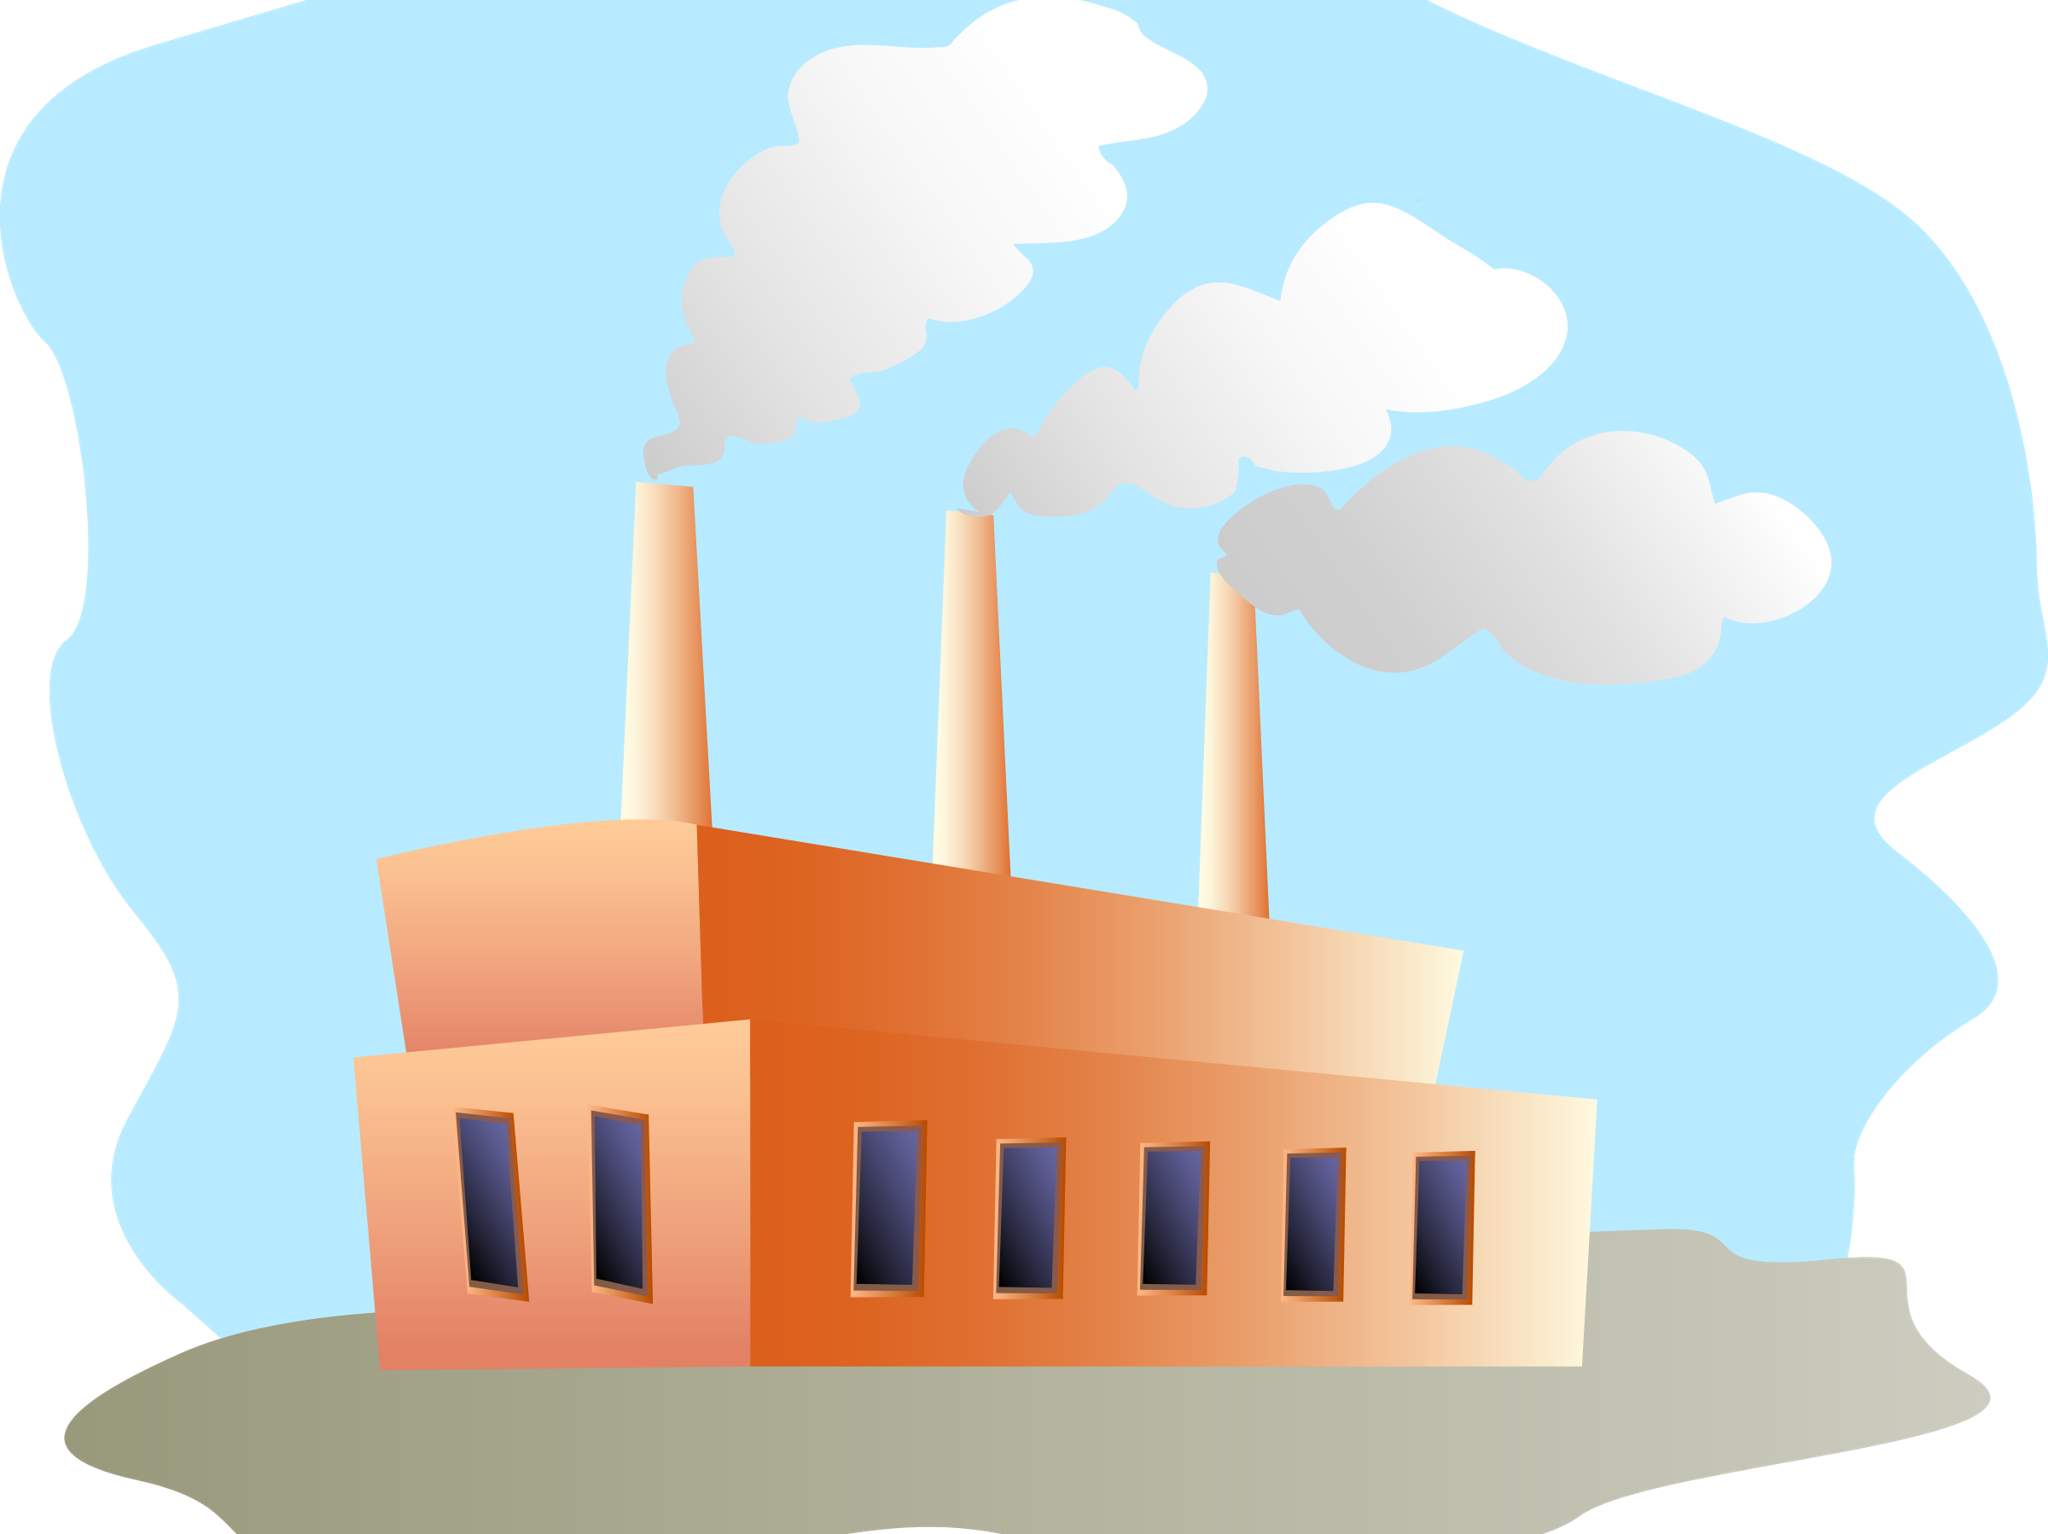 Factory clipart industrial age.